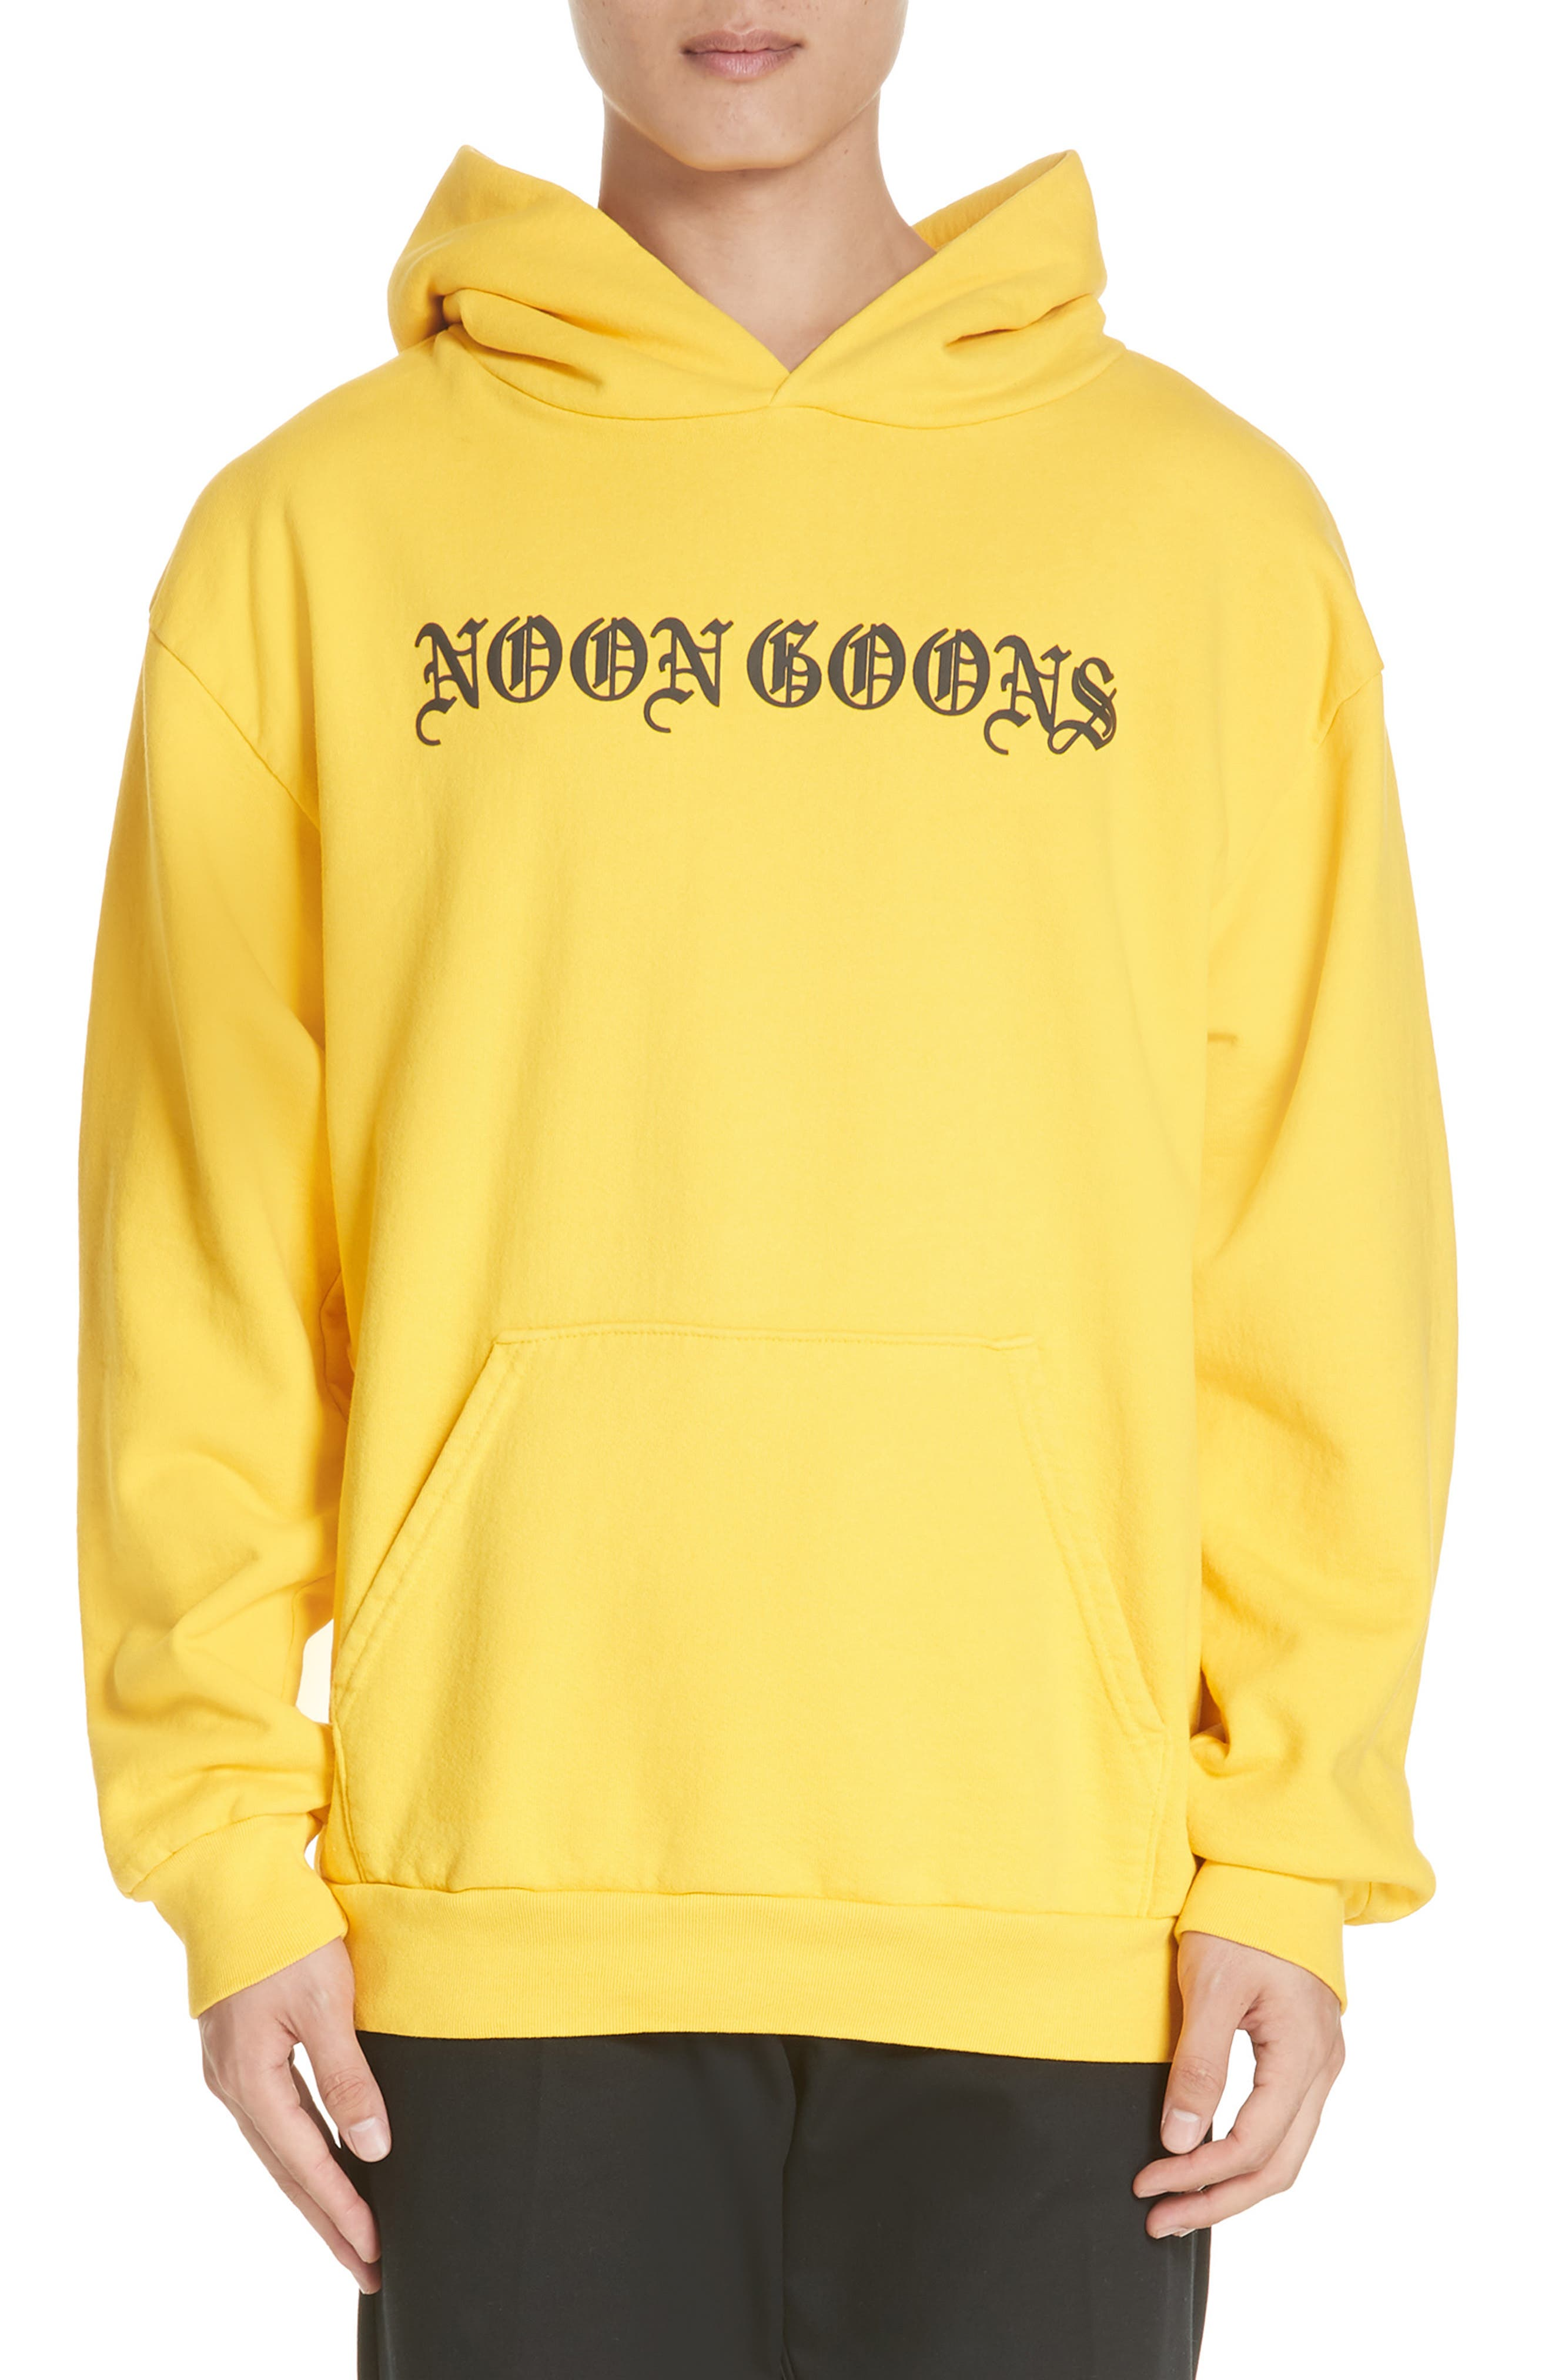 NOON GOONS Old English Graphic Hoodie in Gold